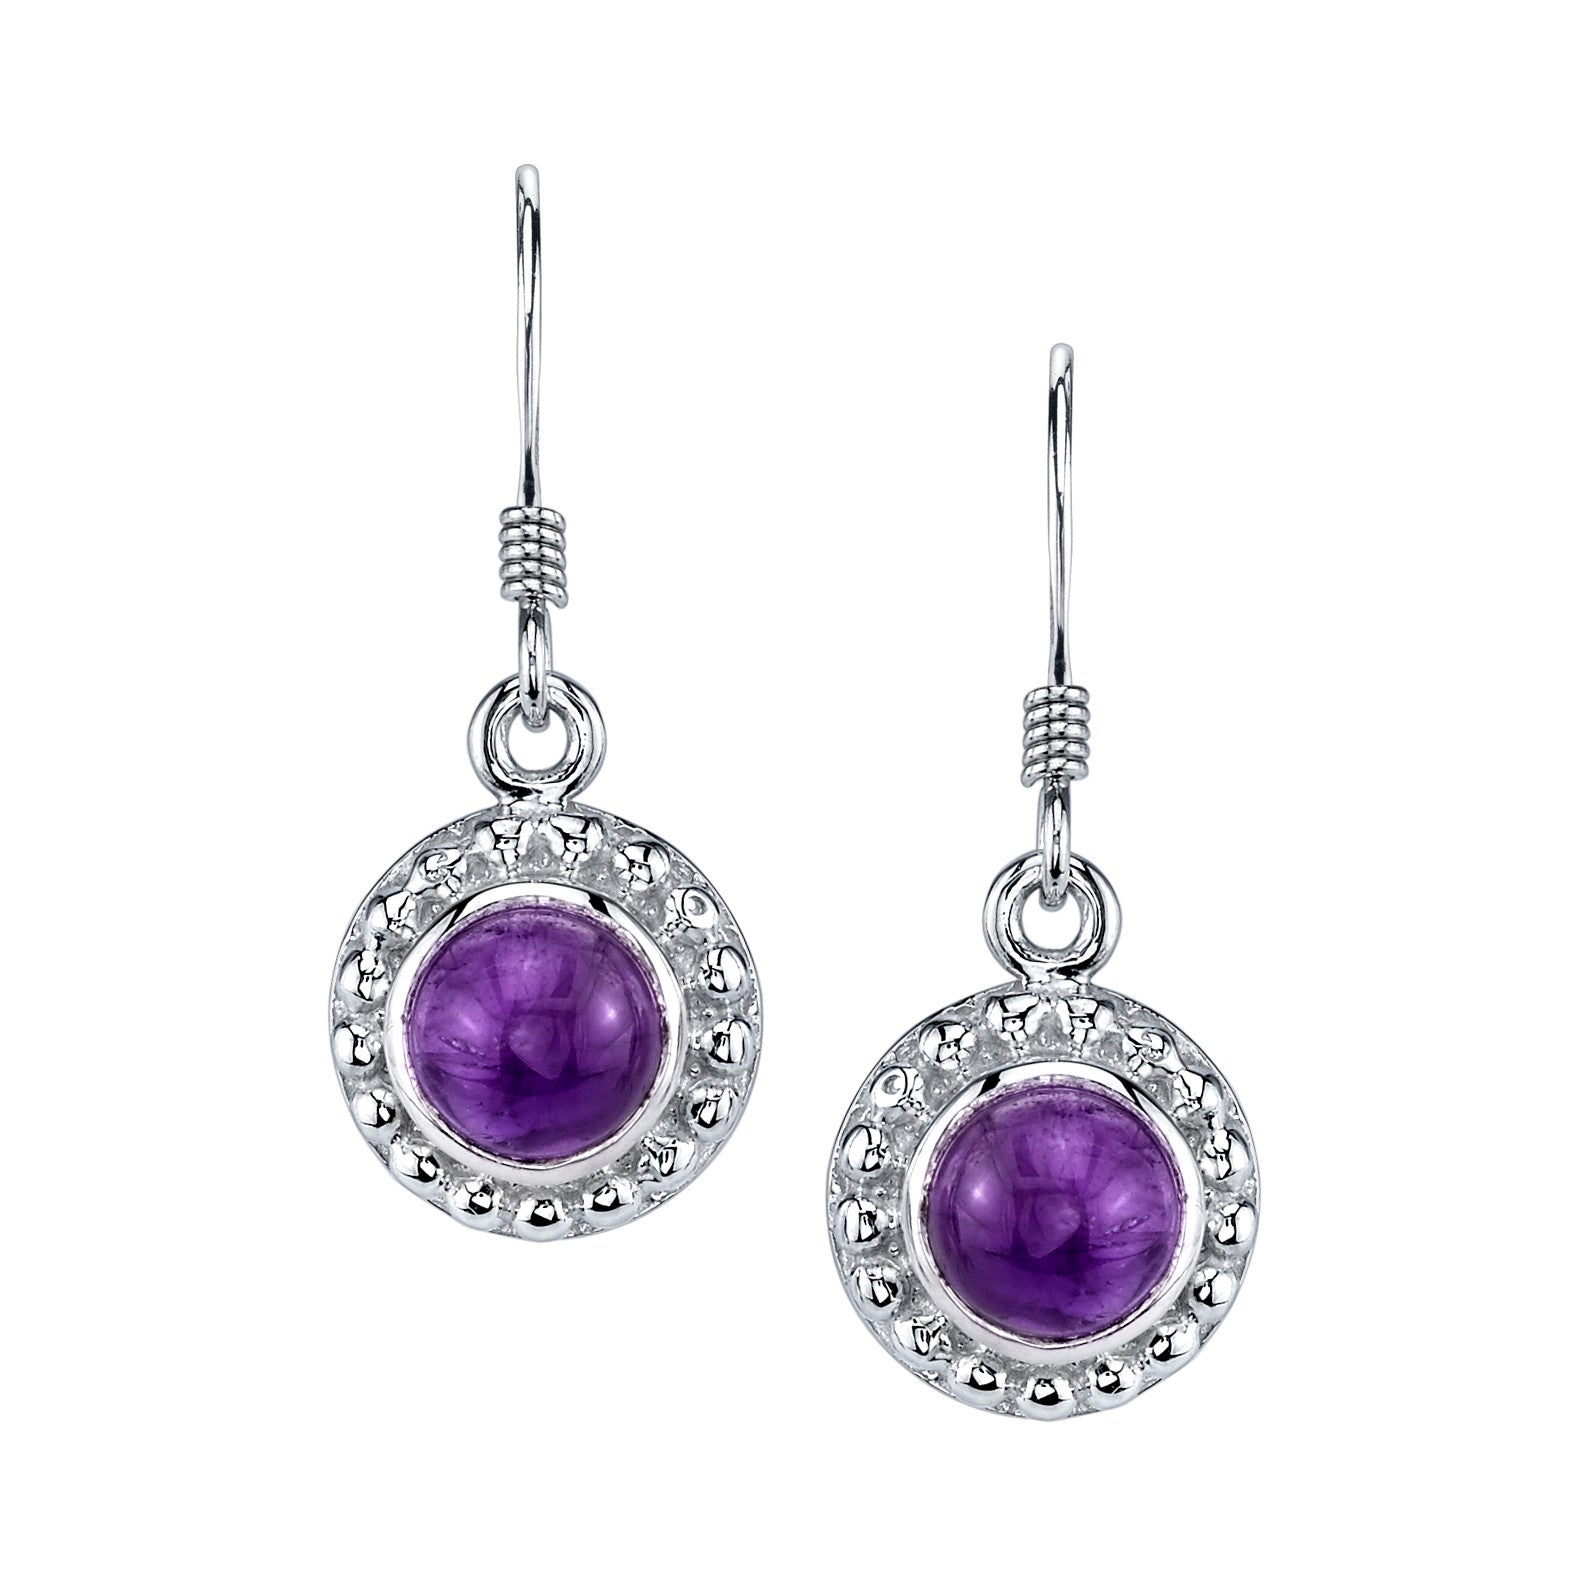 Cabochon Amethyst Drop Earrings